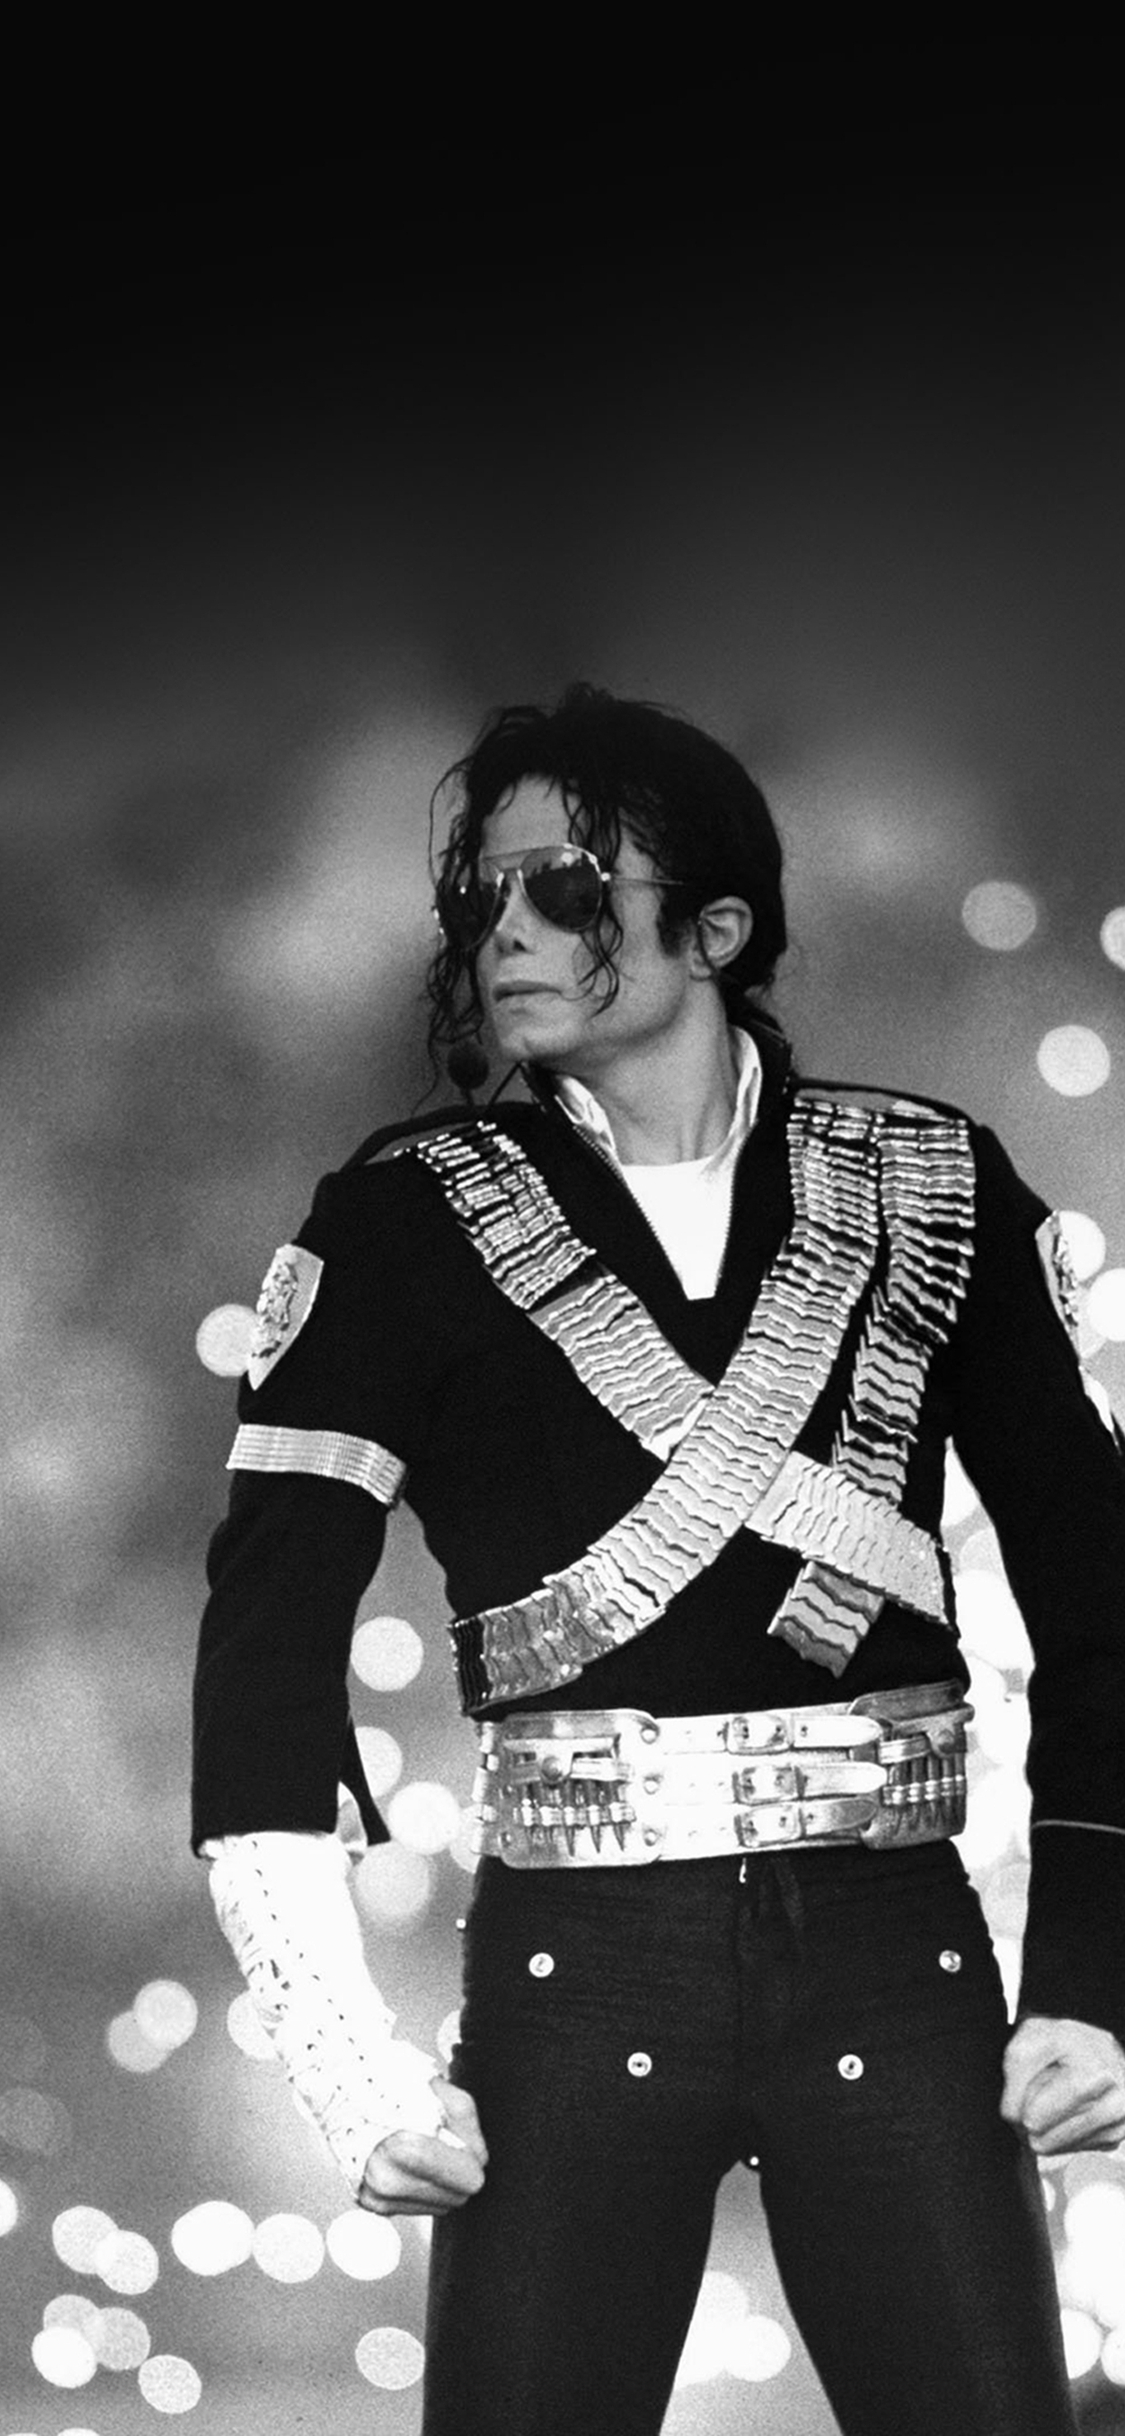 Michael Jackson Bw Concert King Of Pop Iphone X Wallpapers